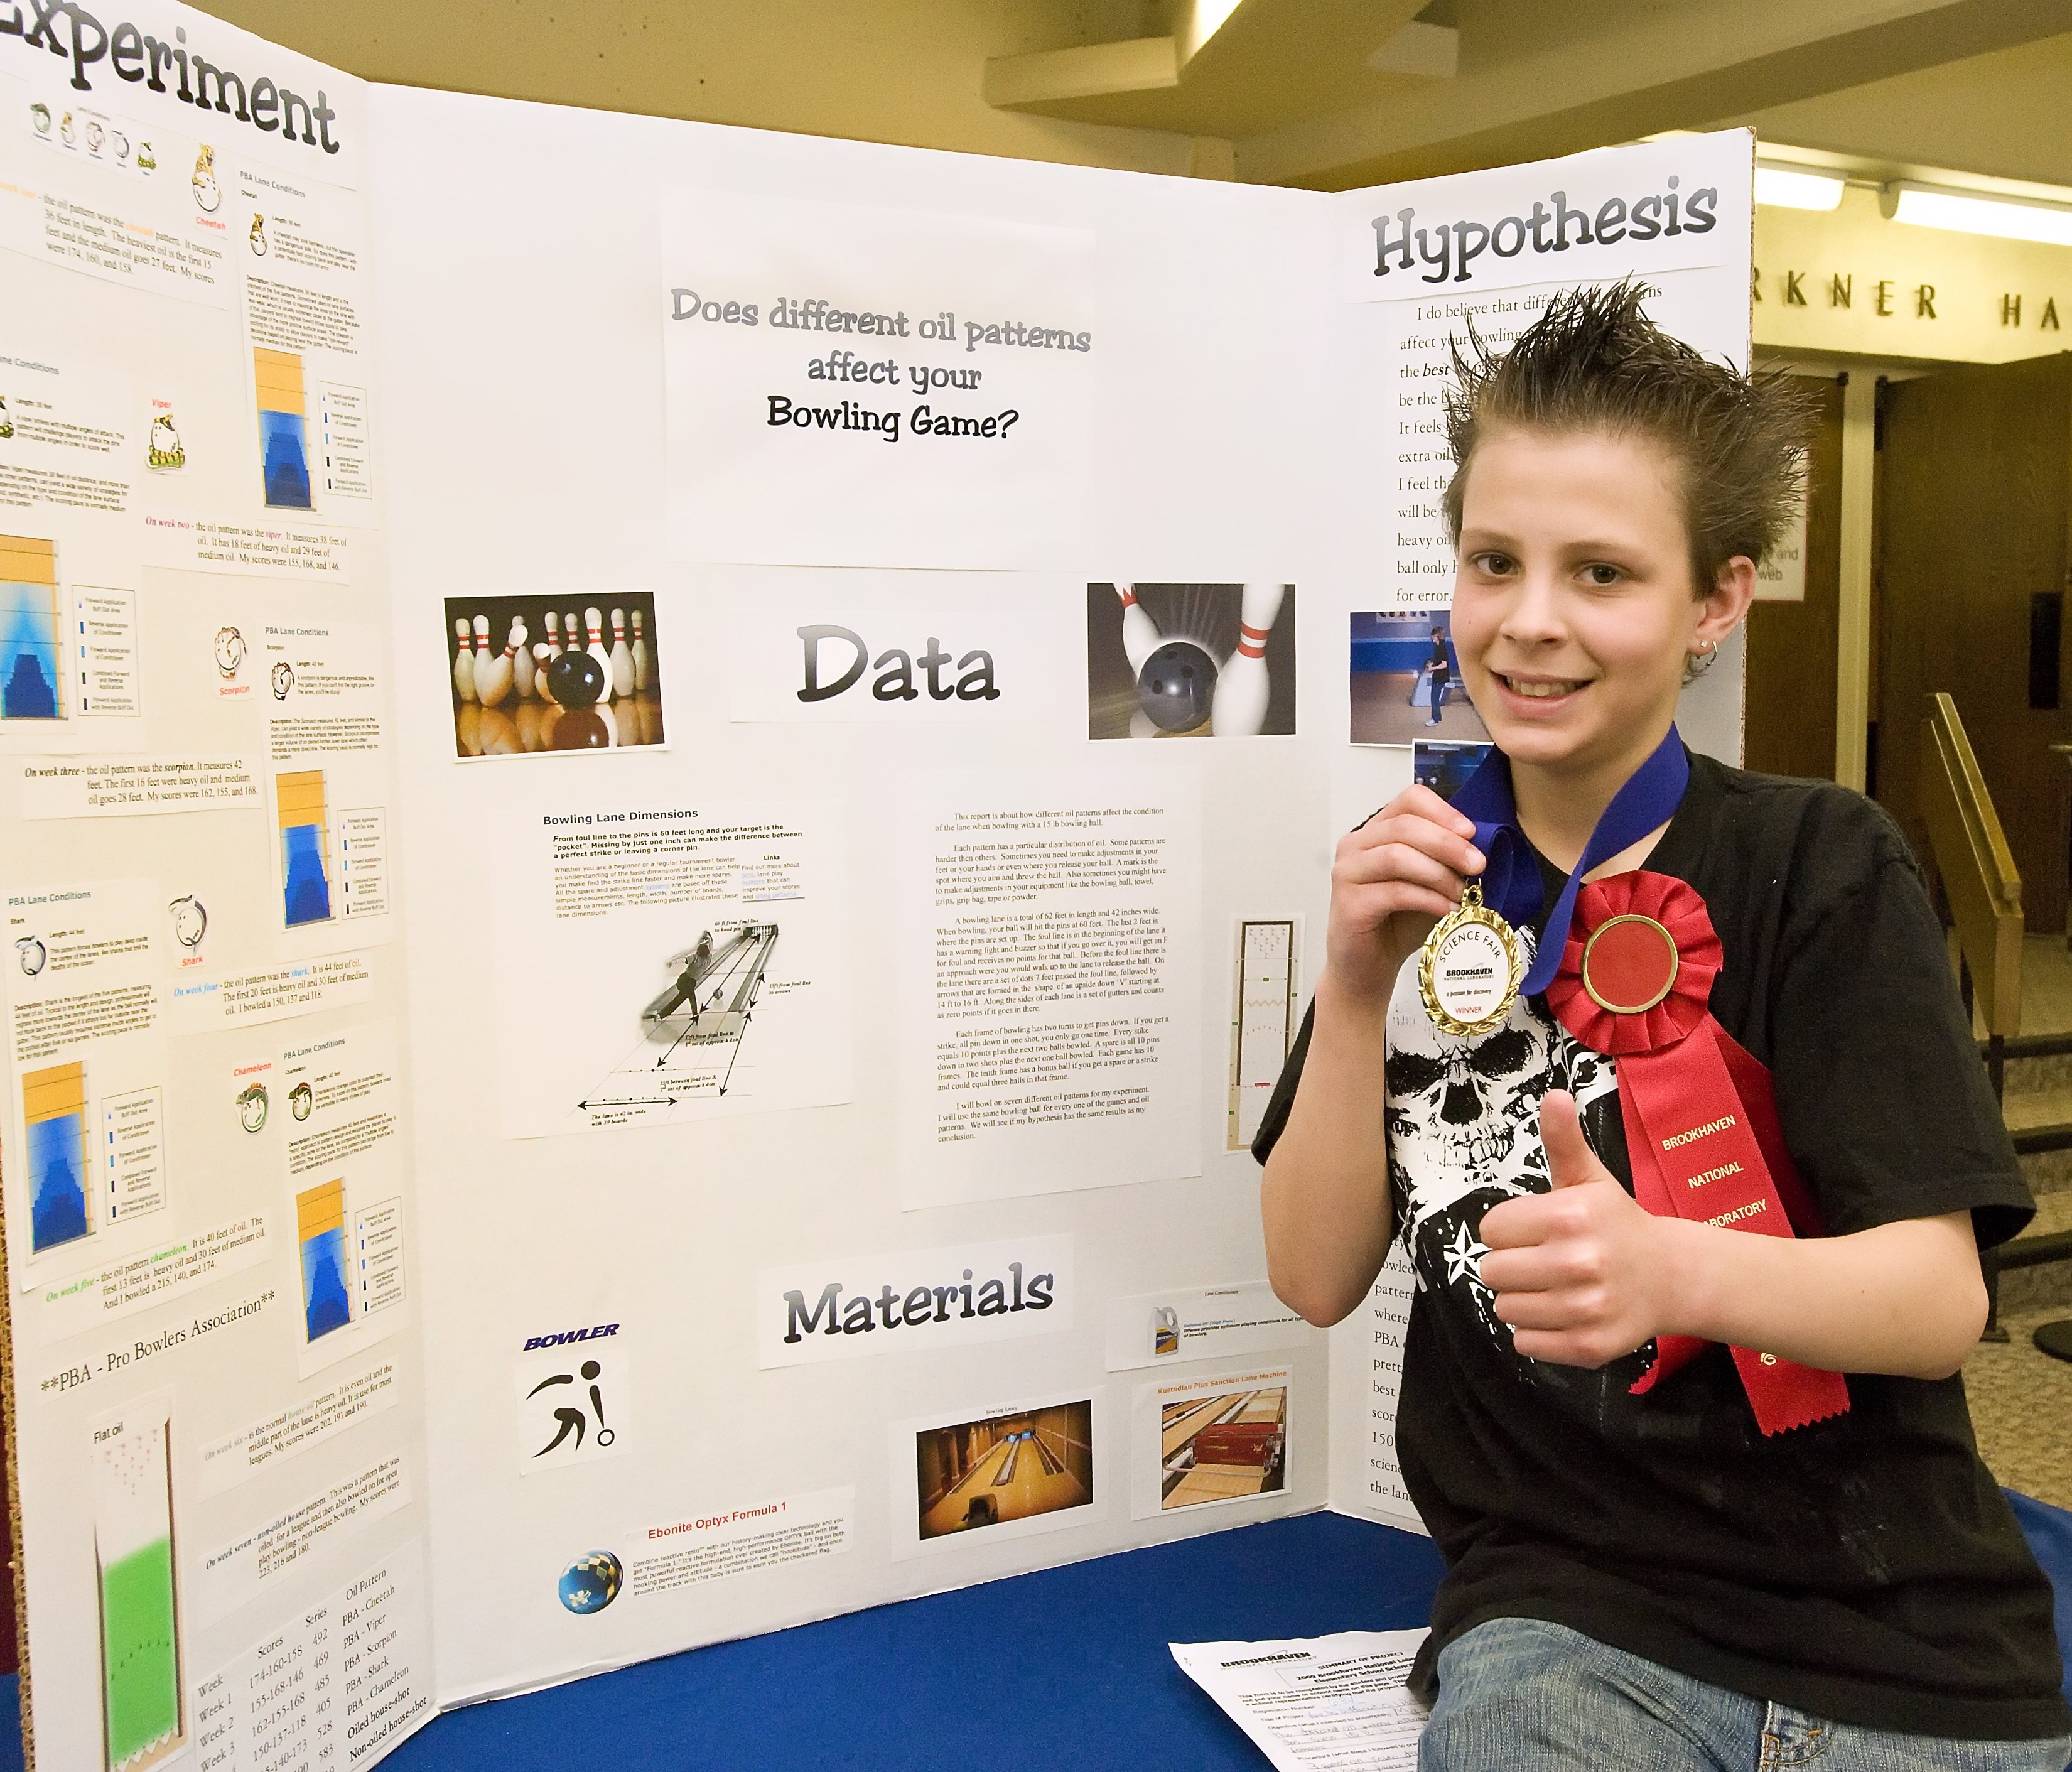 10 Beautiful Science Fair Ideas 5Th Grade from ant control to wind energy winning projects at brookhaven 54 2020